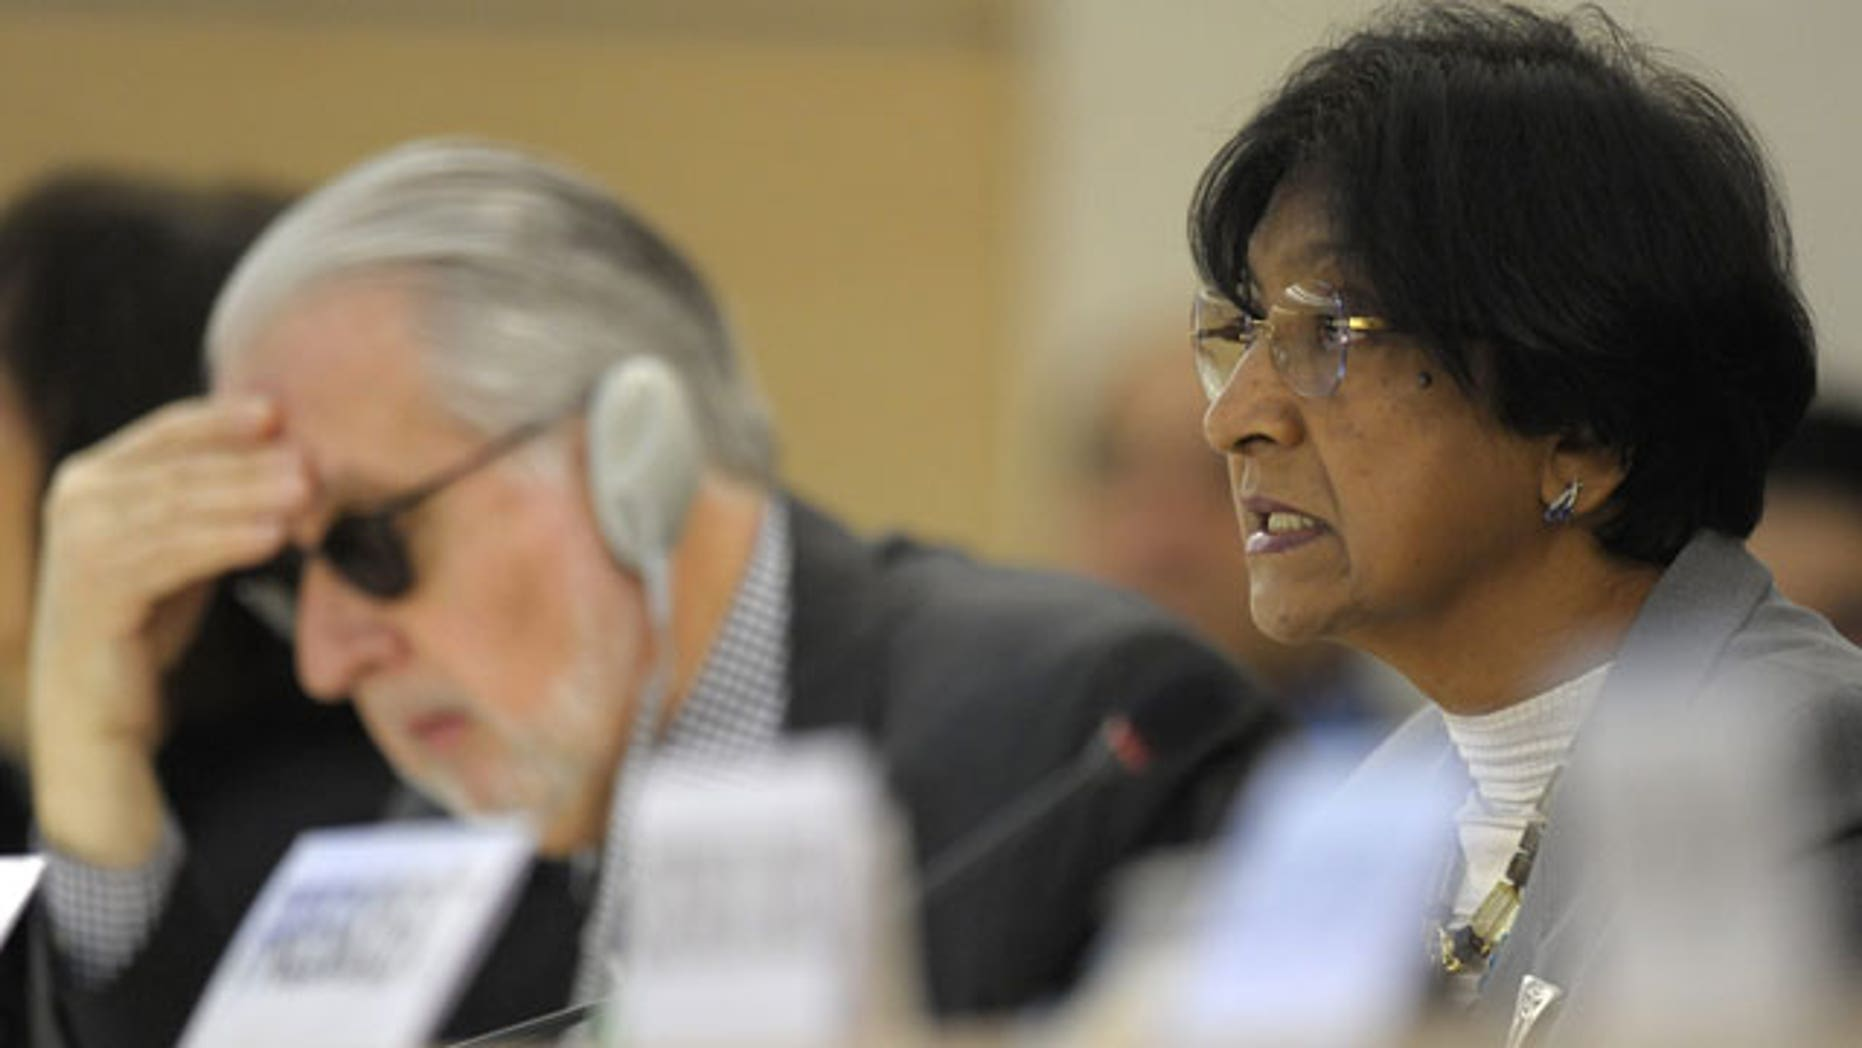 December 2, 2011: UN High Commissioner for Human Rights, South African Navanethem Pillay, right, delivers her statement next to Brazilian Paulo Pinheiro, left, Chairperson of the independent Commission of Inquiry on Syria to Human Rights Council, during the Human Rights Council Special Session on the human rights situation in the Syrian Arab Republic.